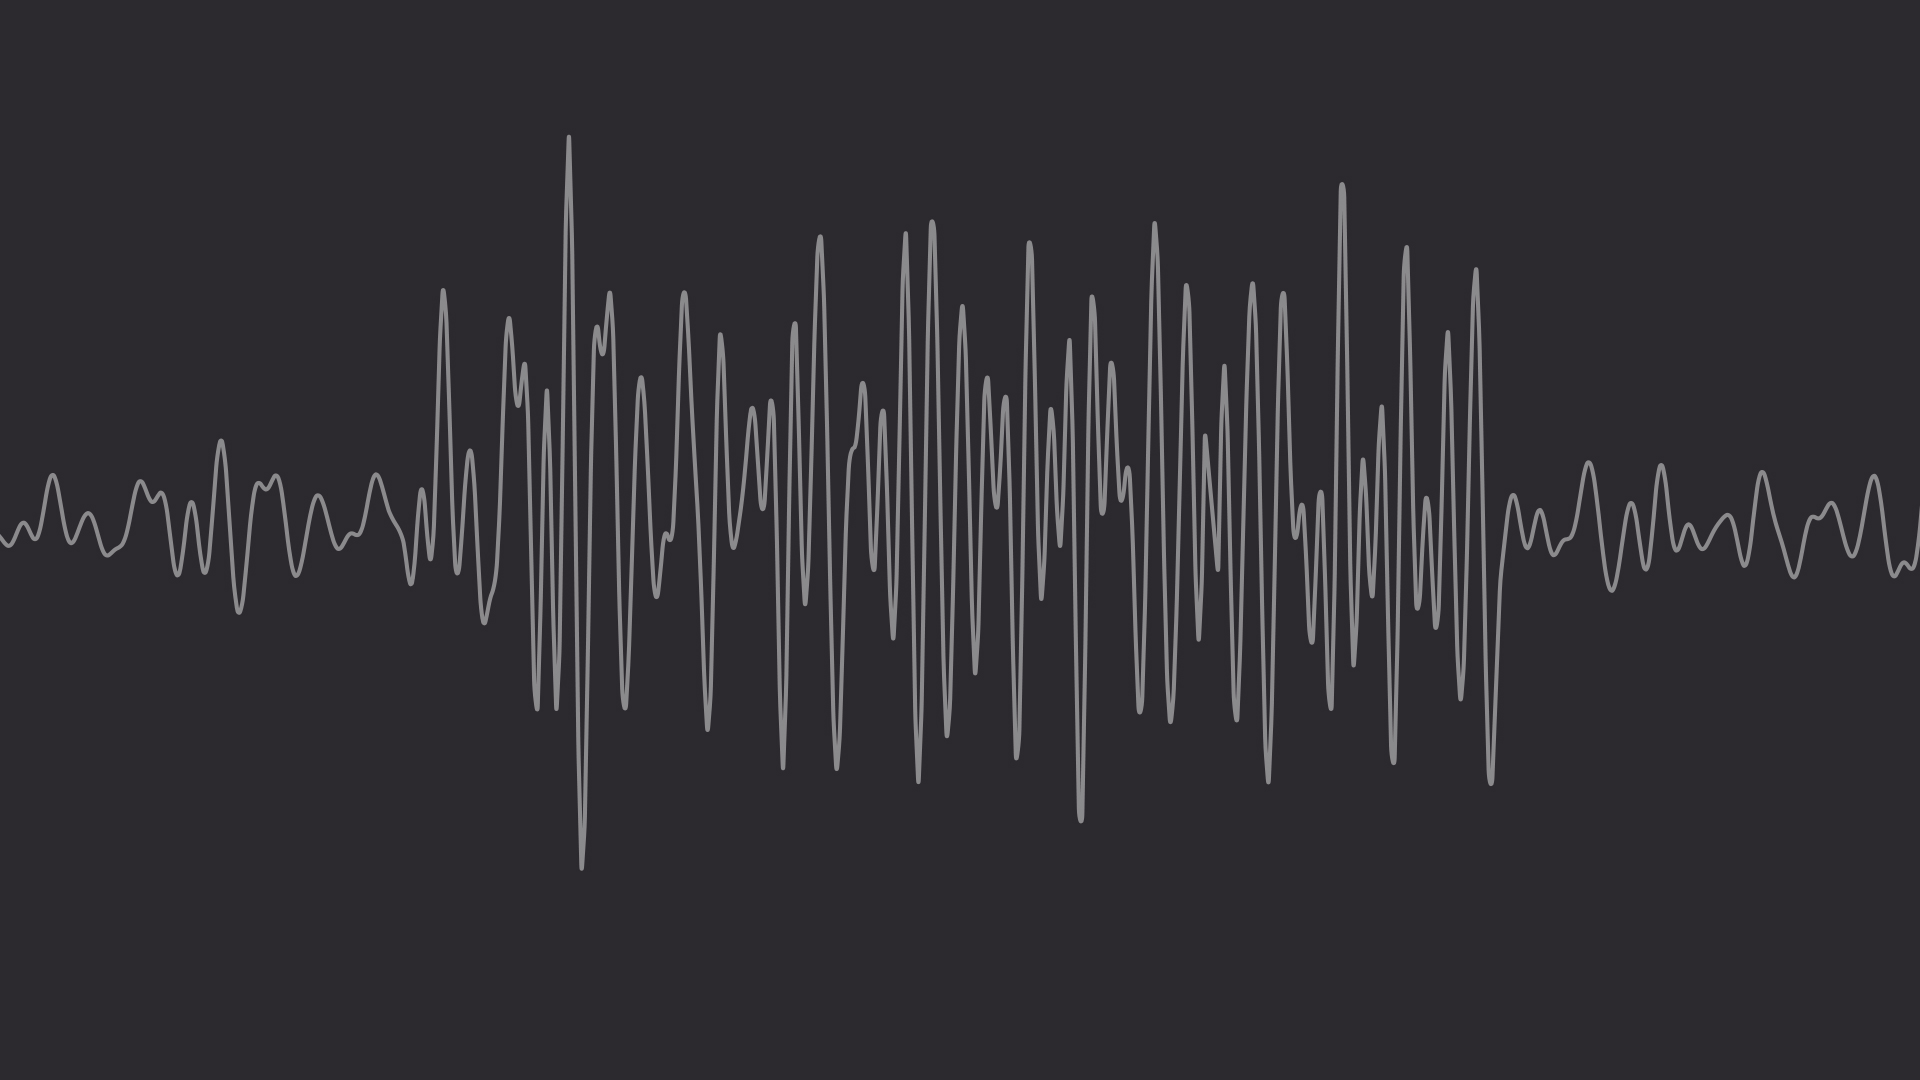 A looping video that shows a rippling wave pattern in a simplified brainwave pattern